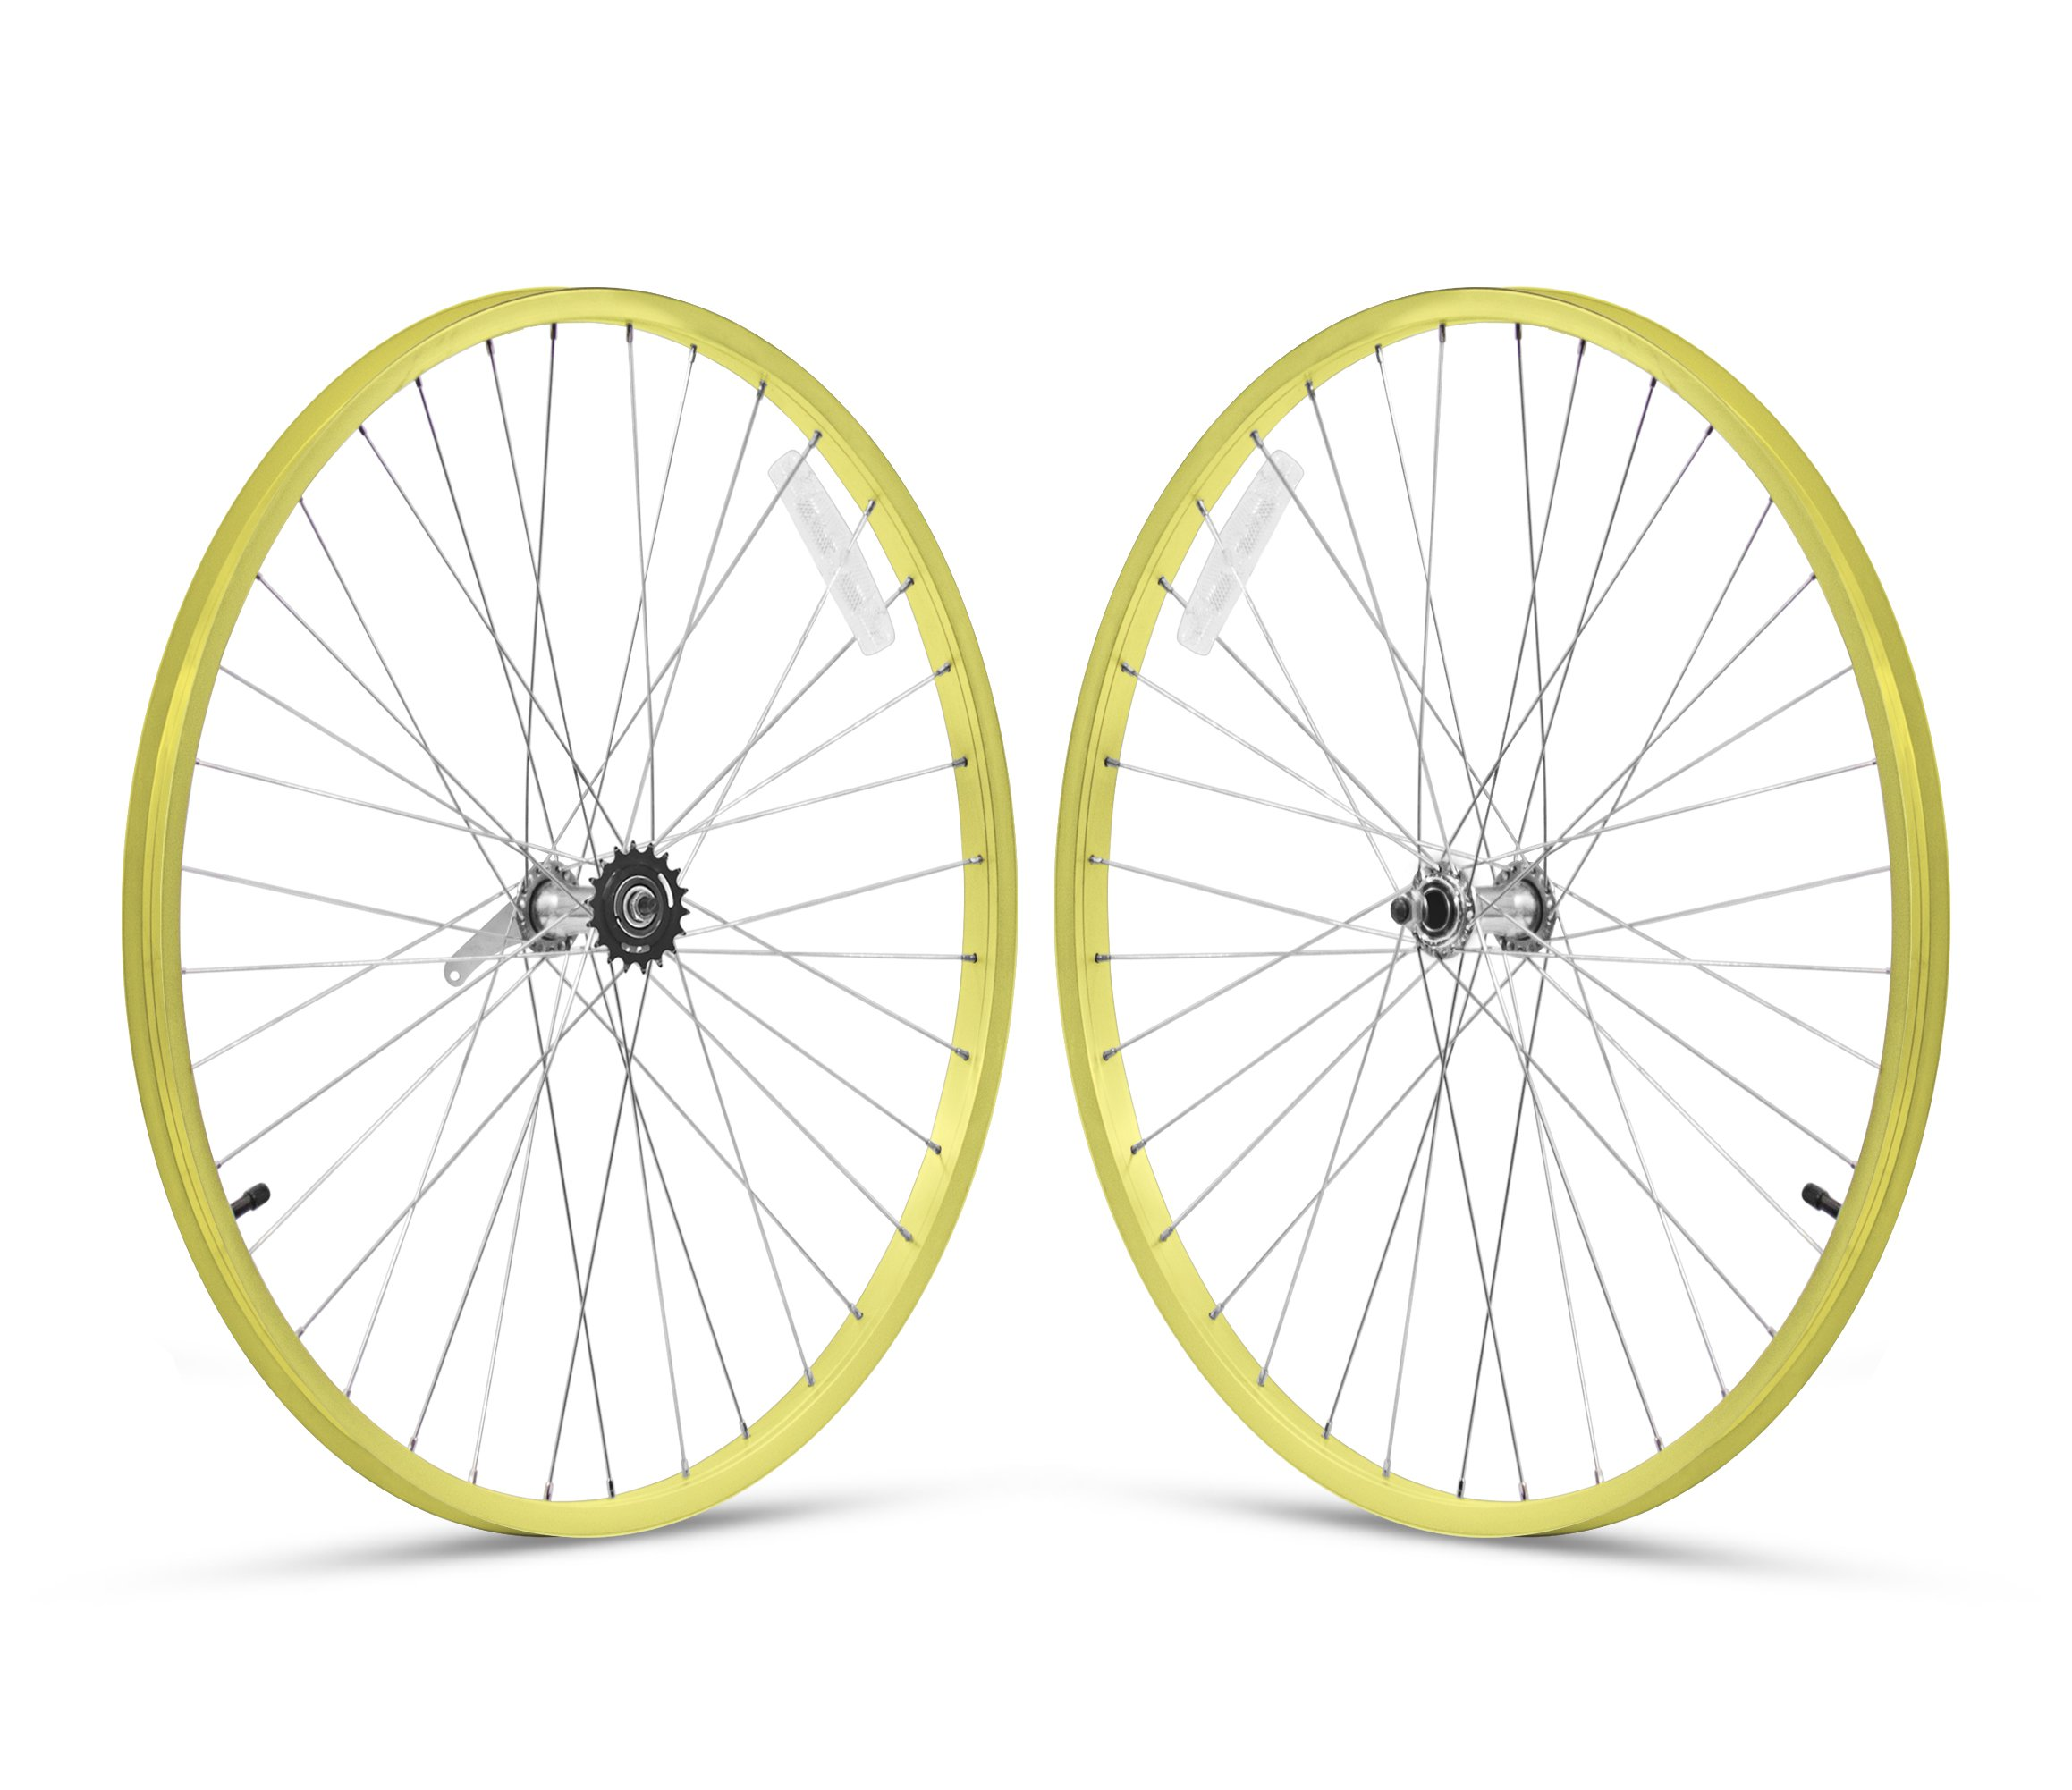 Firmstrong 1-Speed Beach Cruiser Bicycle Wheelset, Front/Rear, Yellow, 26''